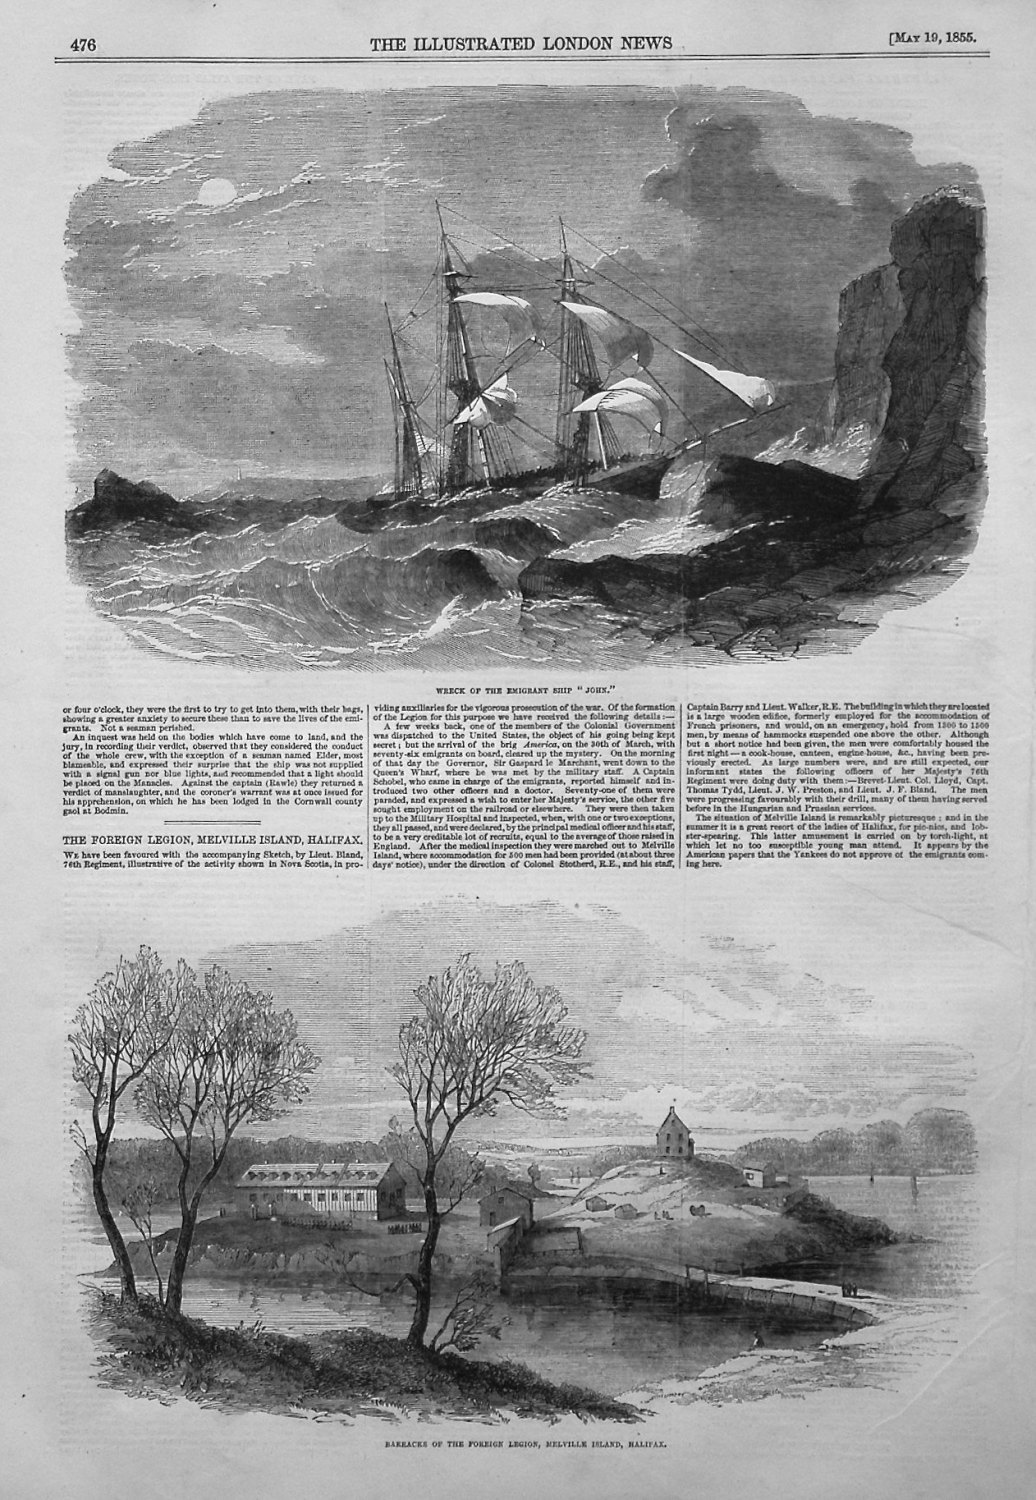 Wreck of the Emigrant Ship